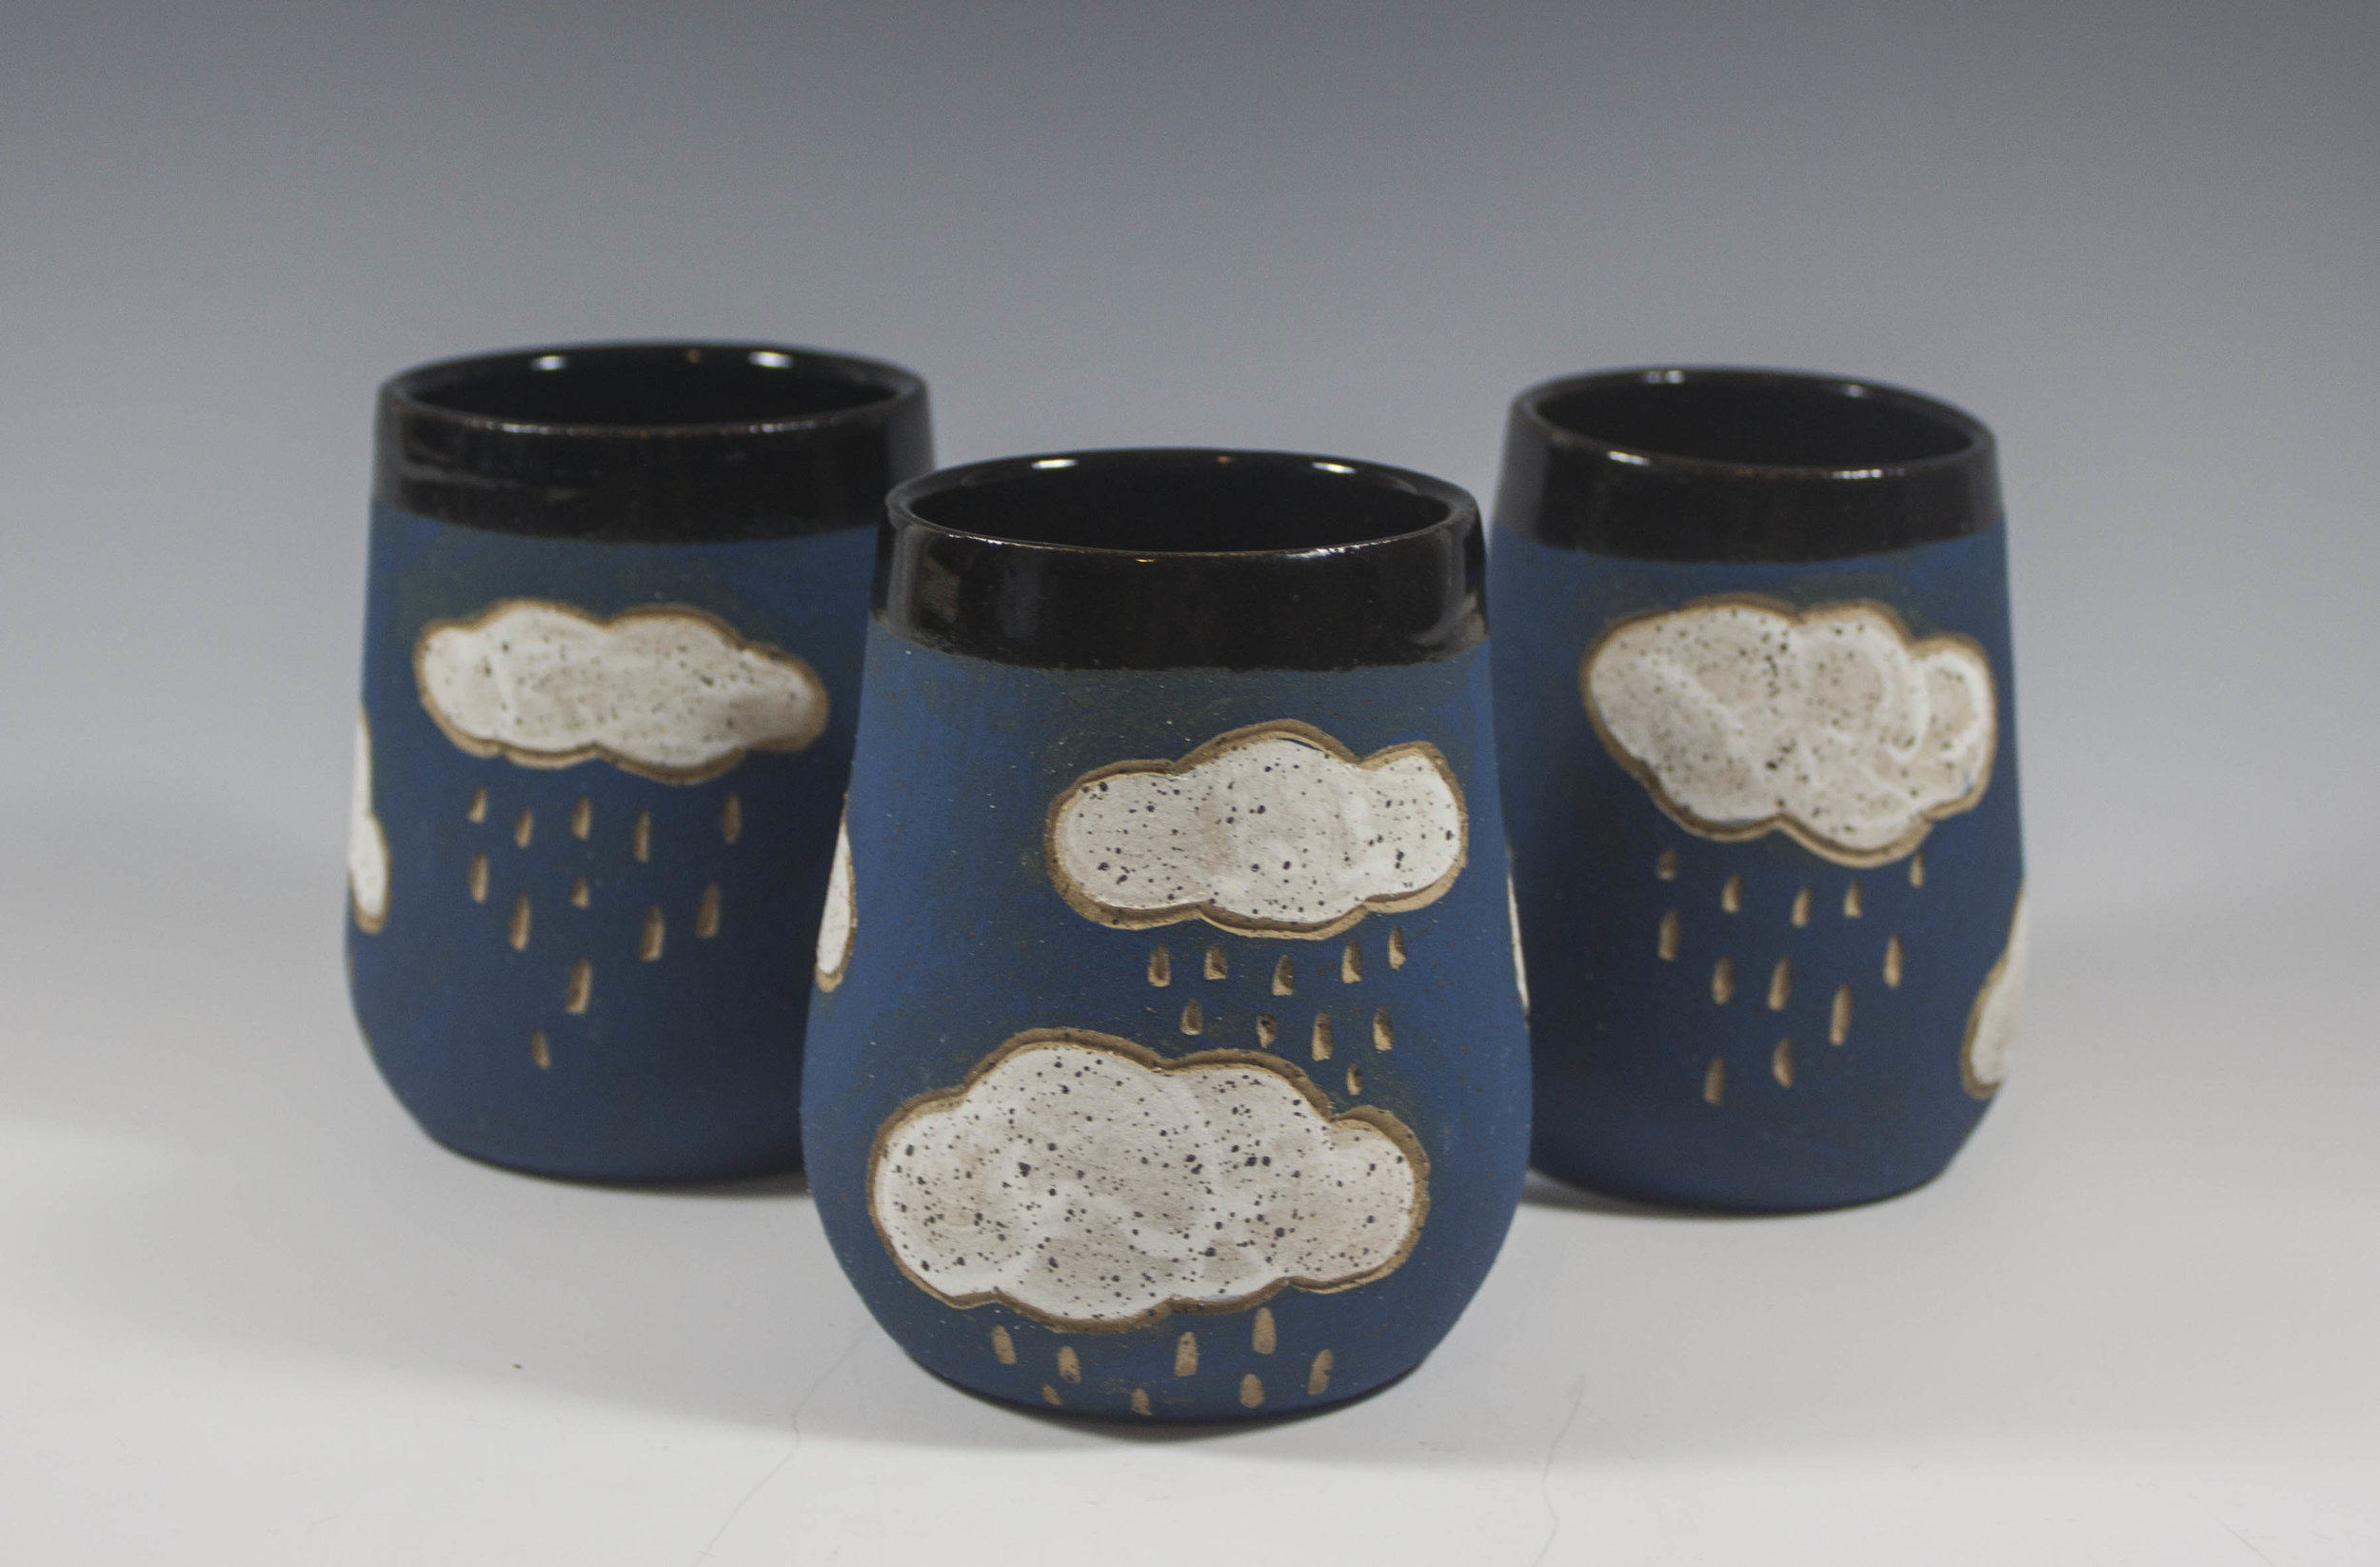 Rainy Day Cloud Wine Glasses - Everything and so much more!